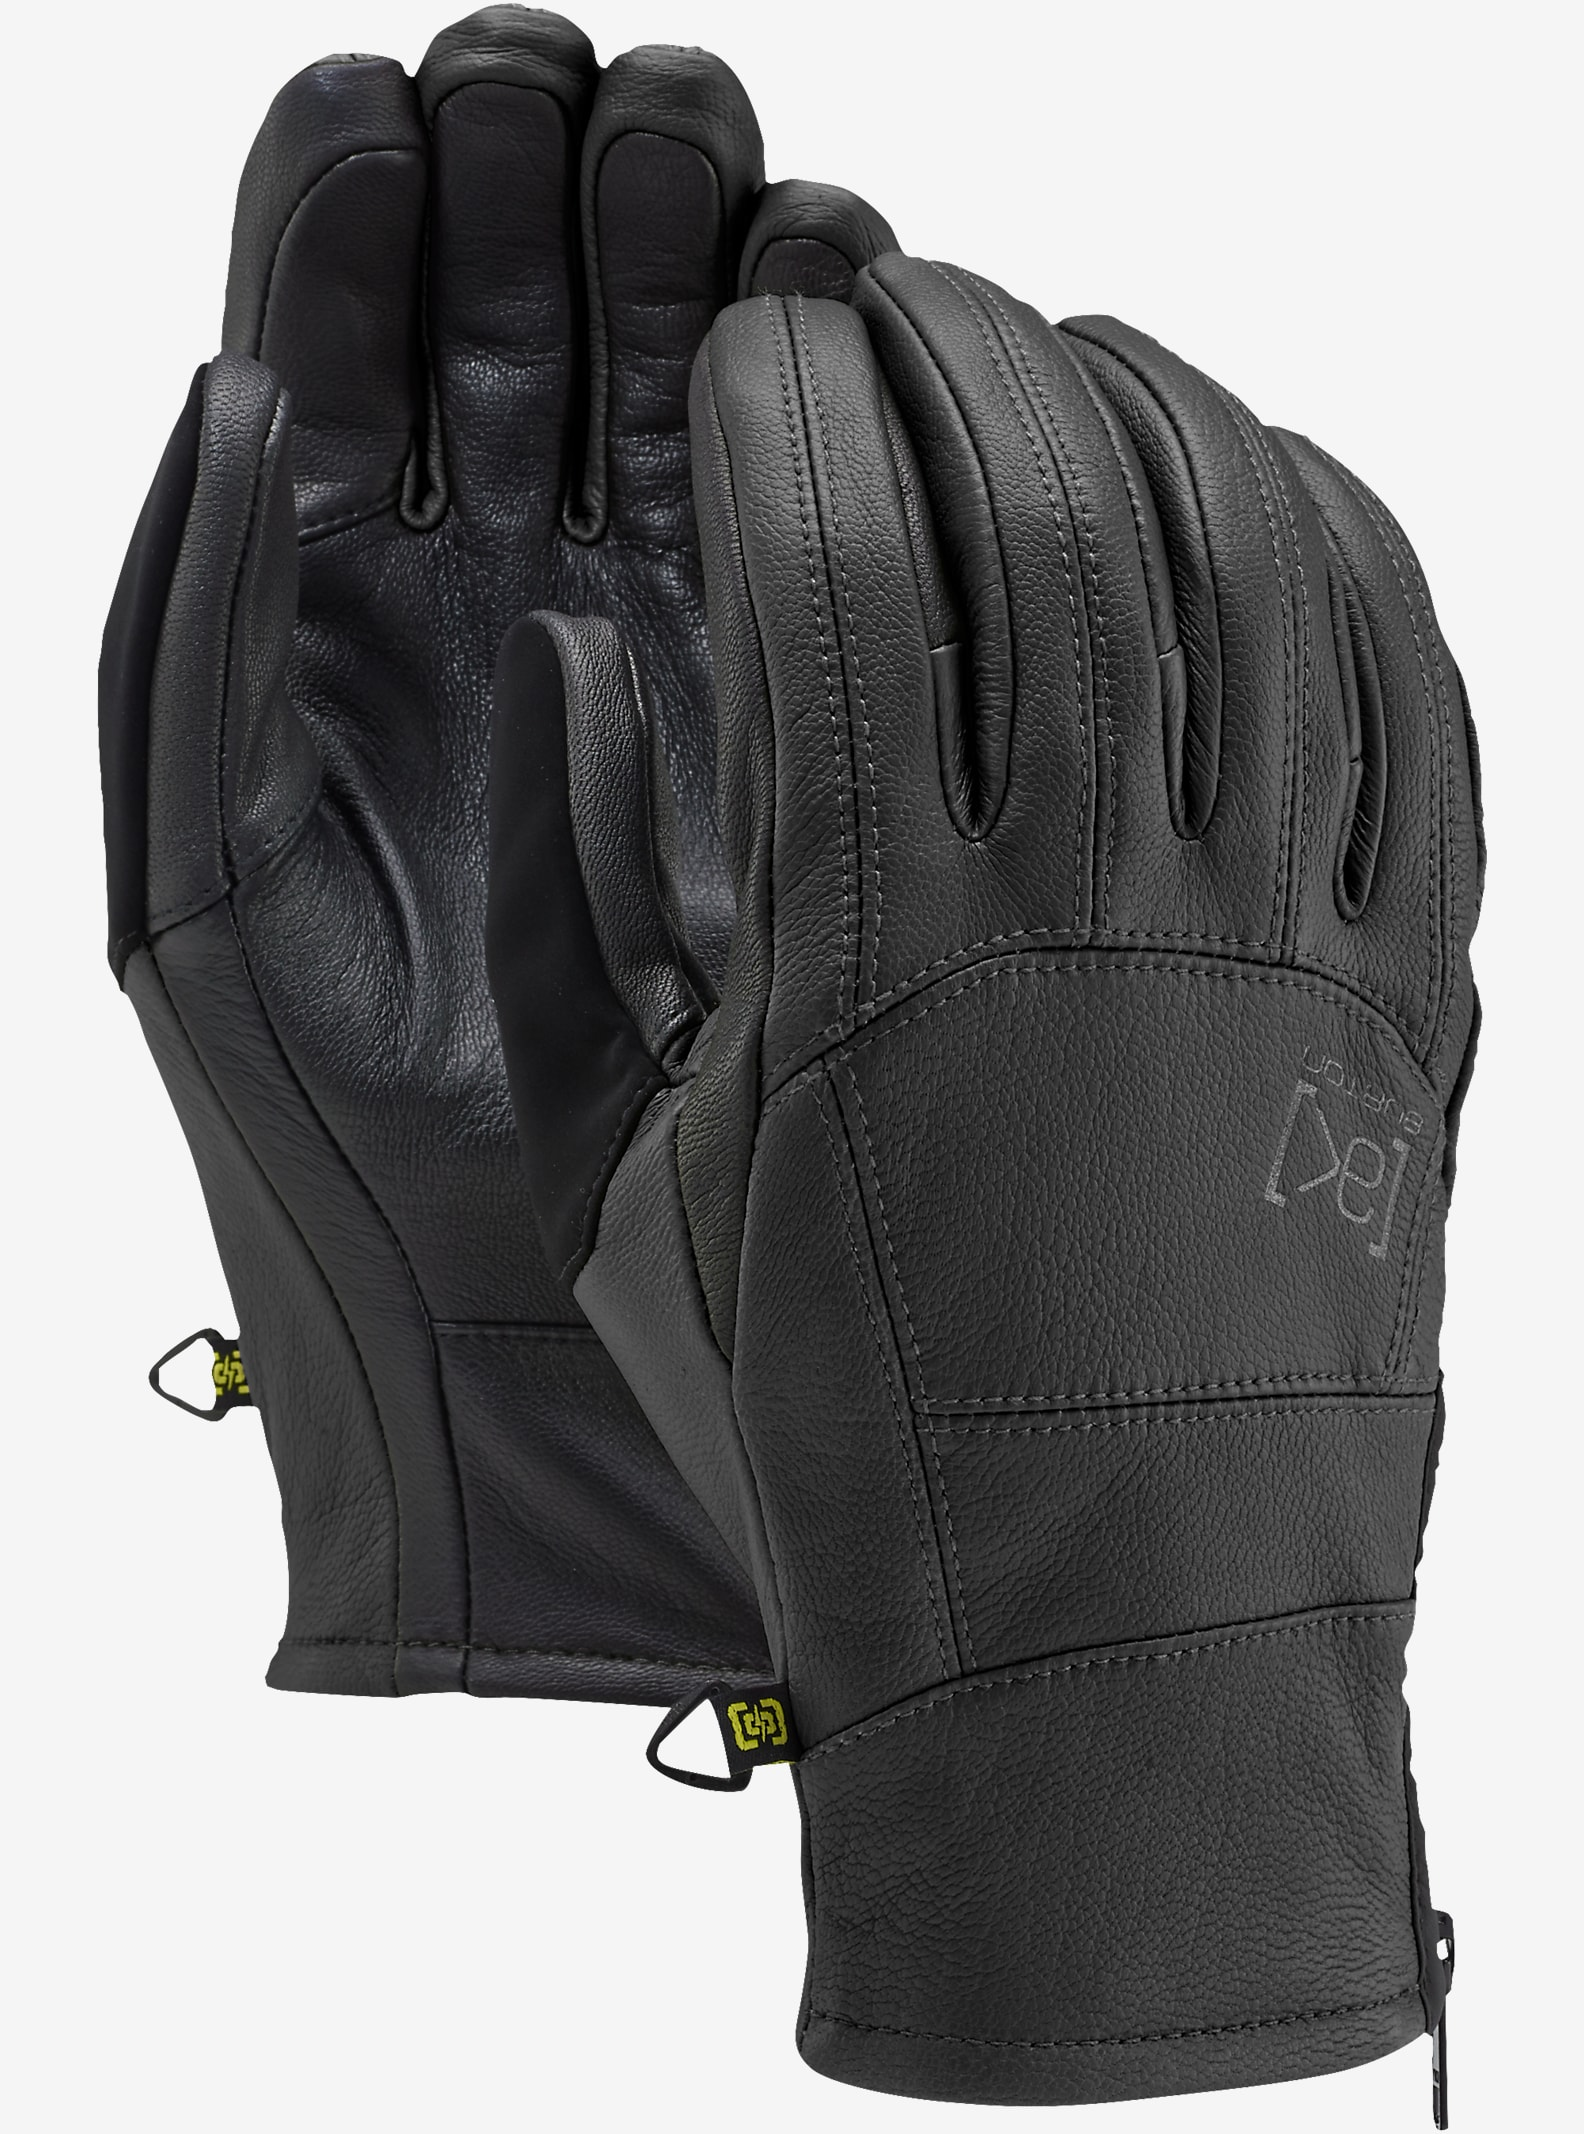 Burton [ak] Leather Tech Glove shown in True Black